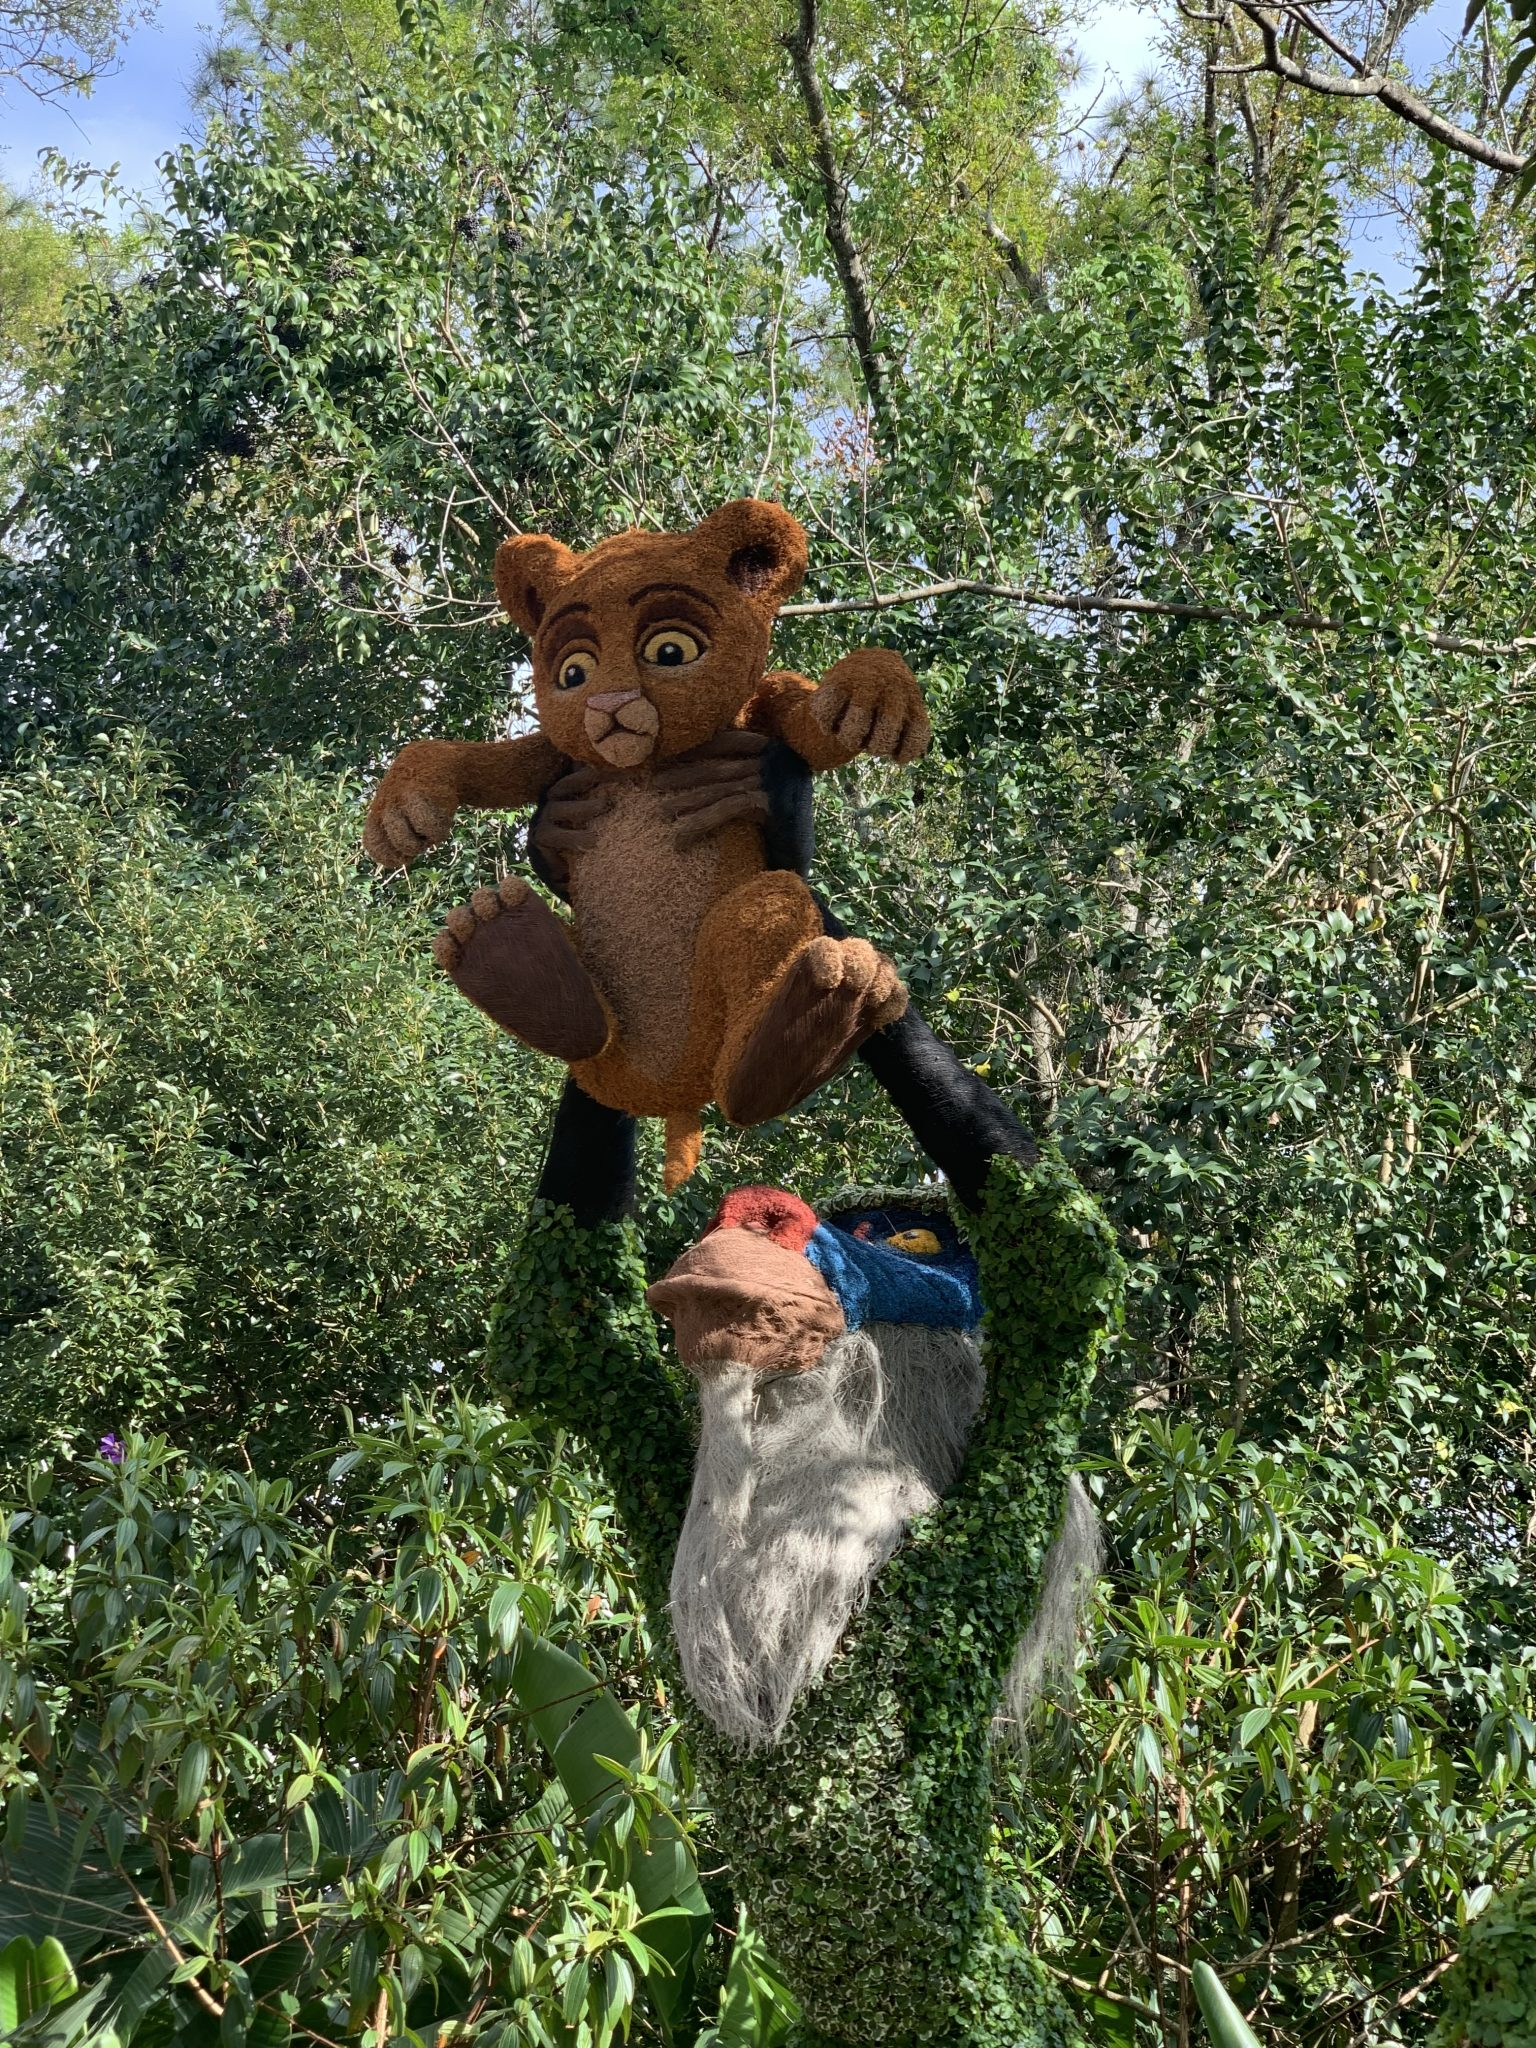 Simba being held high by Rafiki topiary at Epcot Flower and Garden Festival